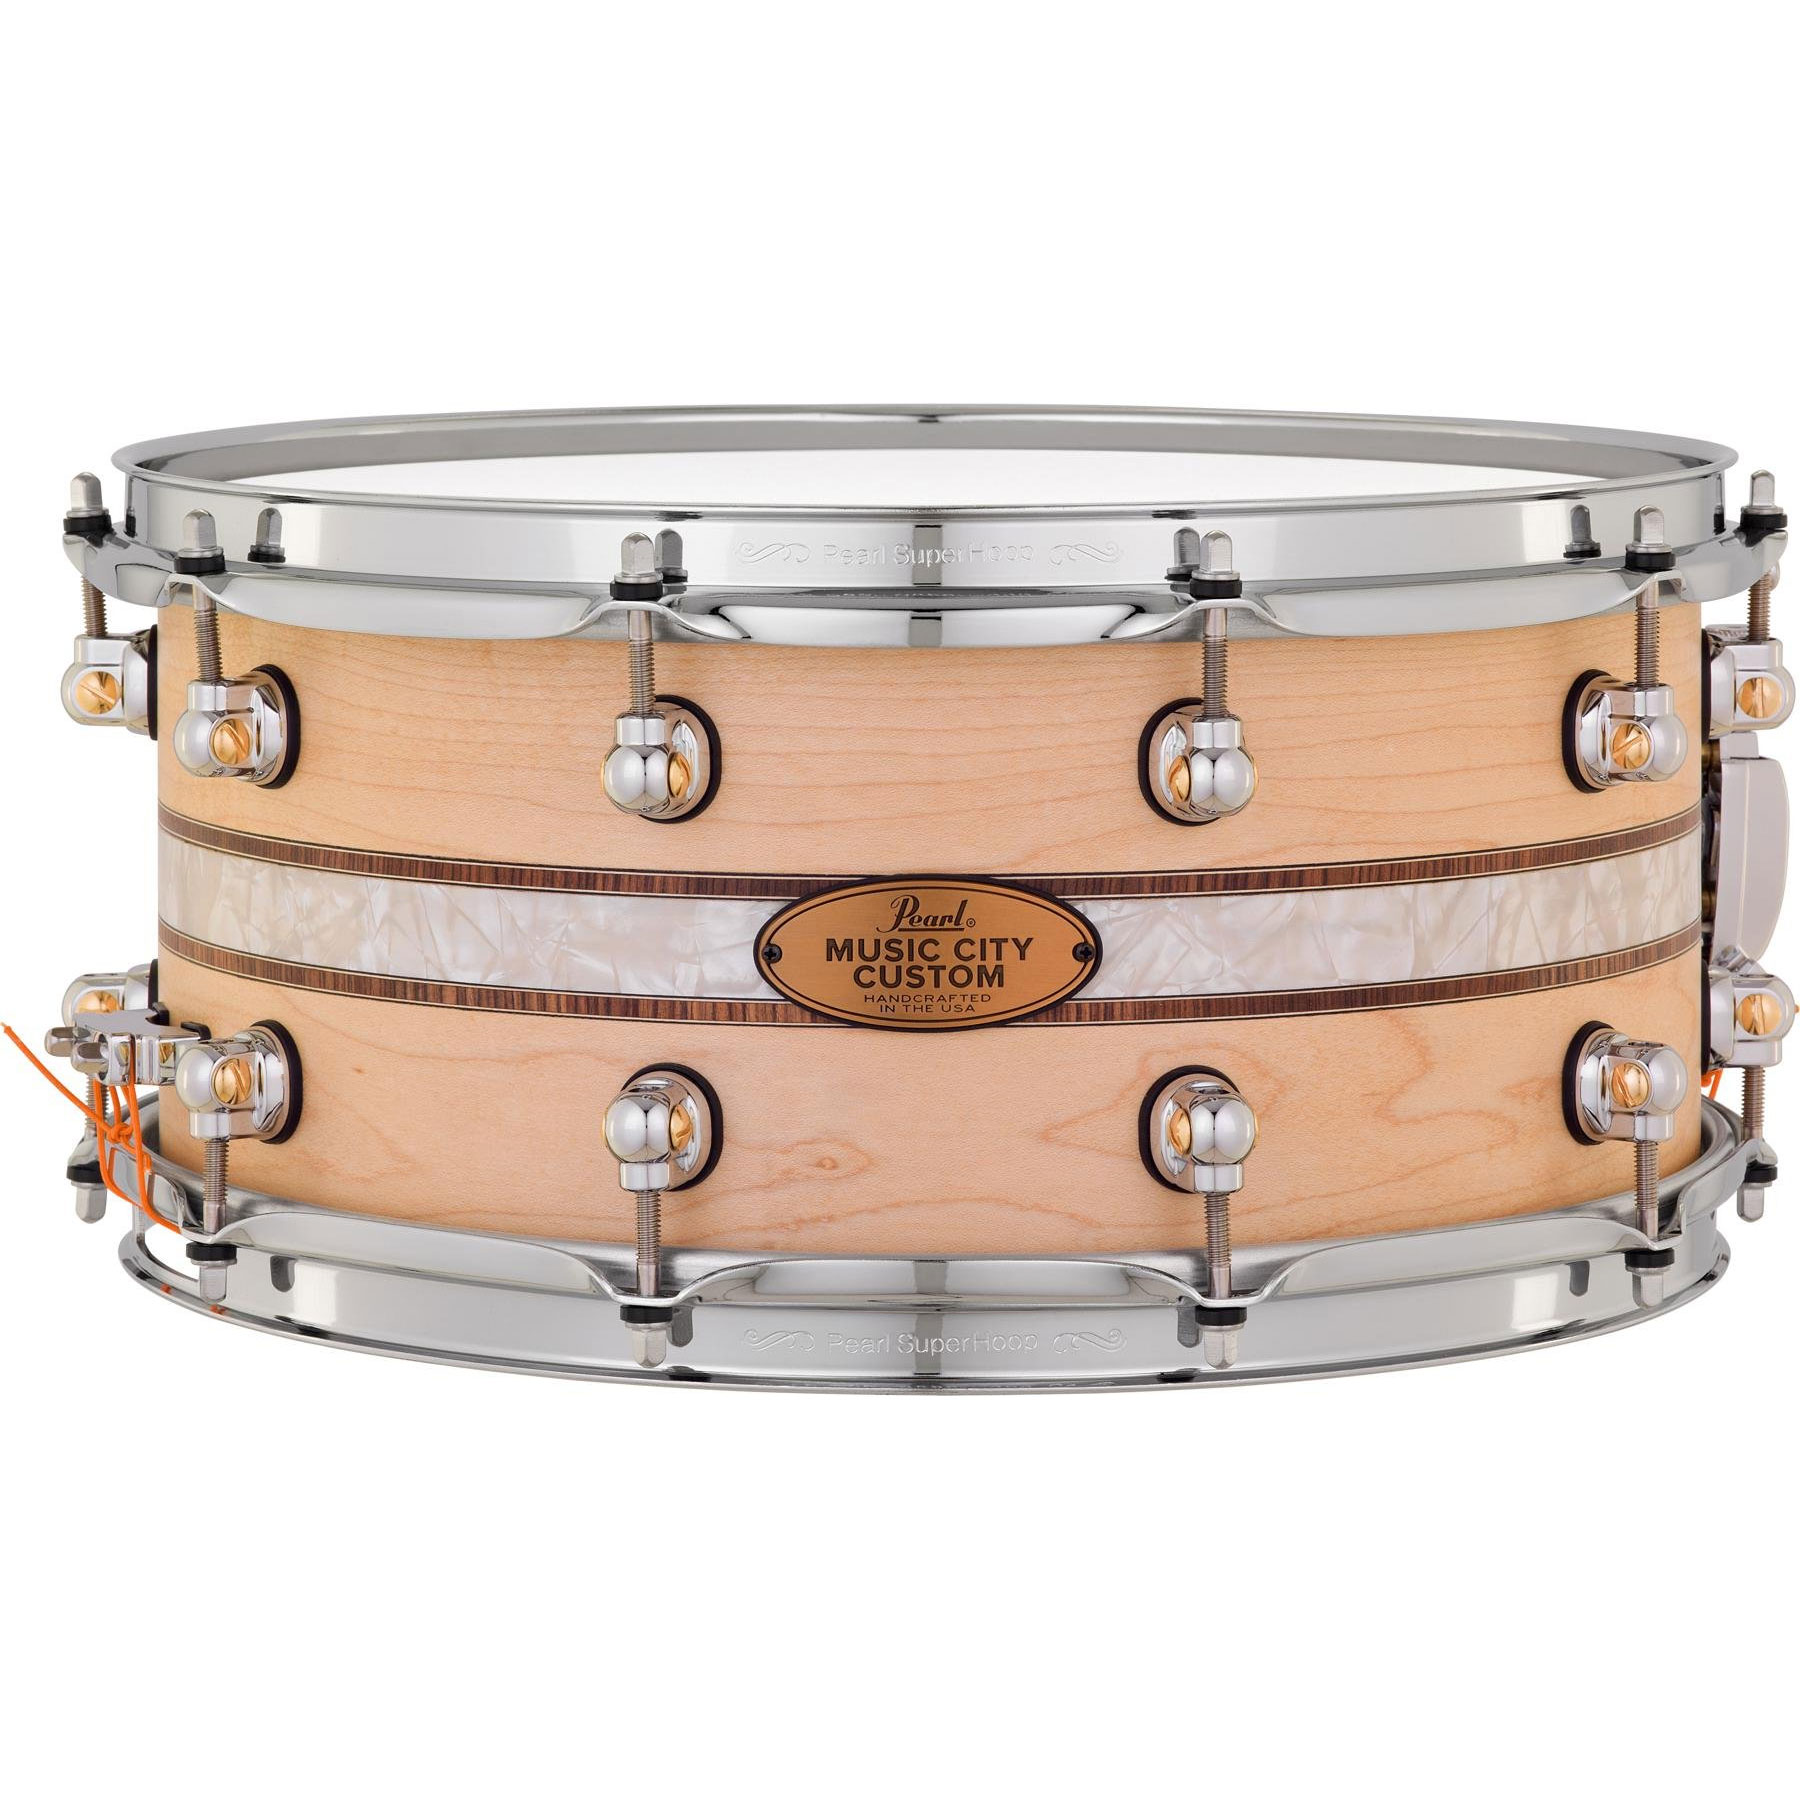 "Pearl 14"" x 6.5"" Music City Custom Solid Maple Snare Drum with Kingwood Royal Inlay"